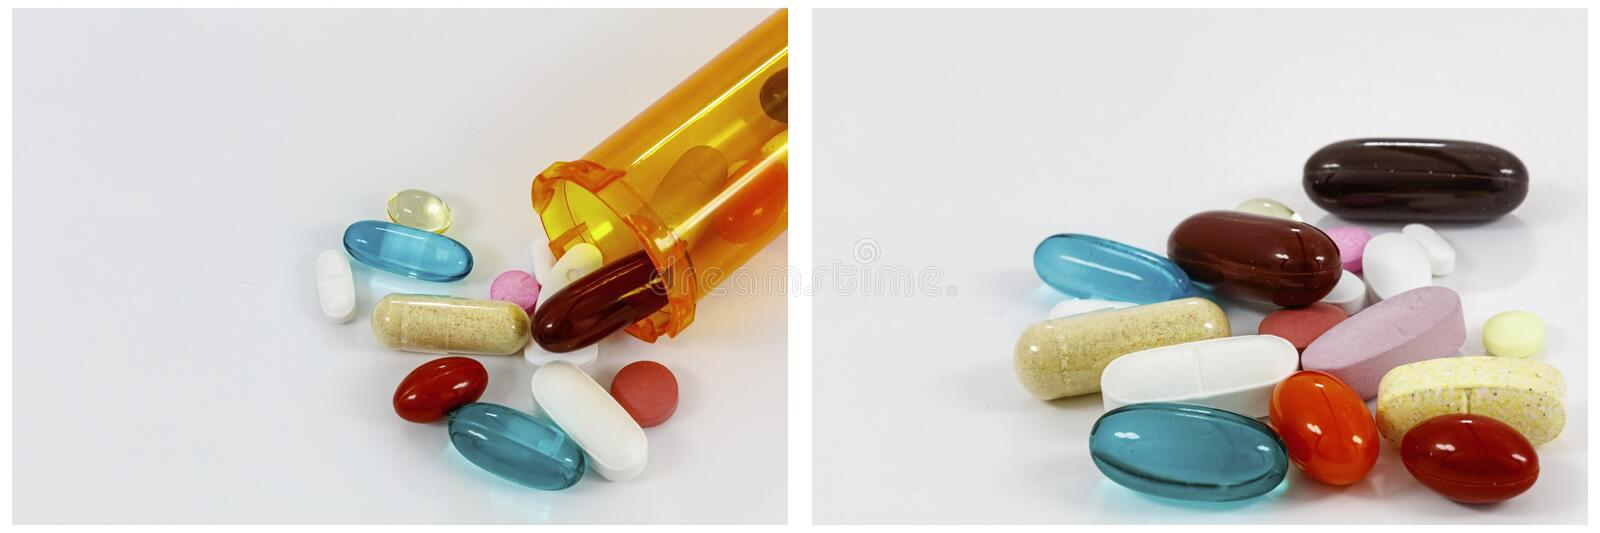 Pill bottle drugs spilled narcotics supplements collage royalty free stock photo